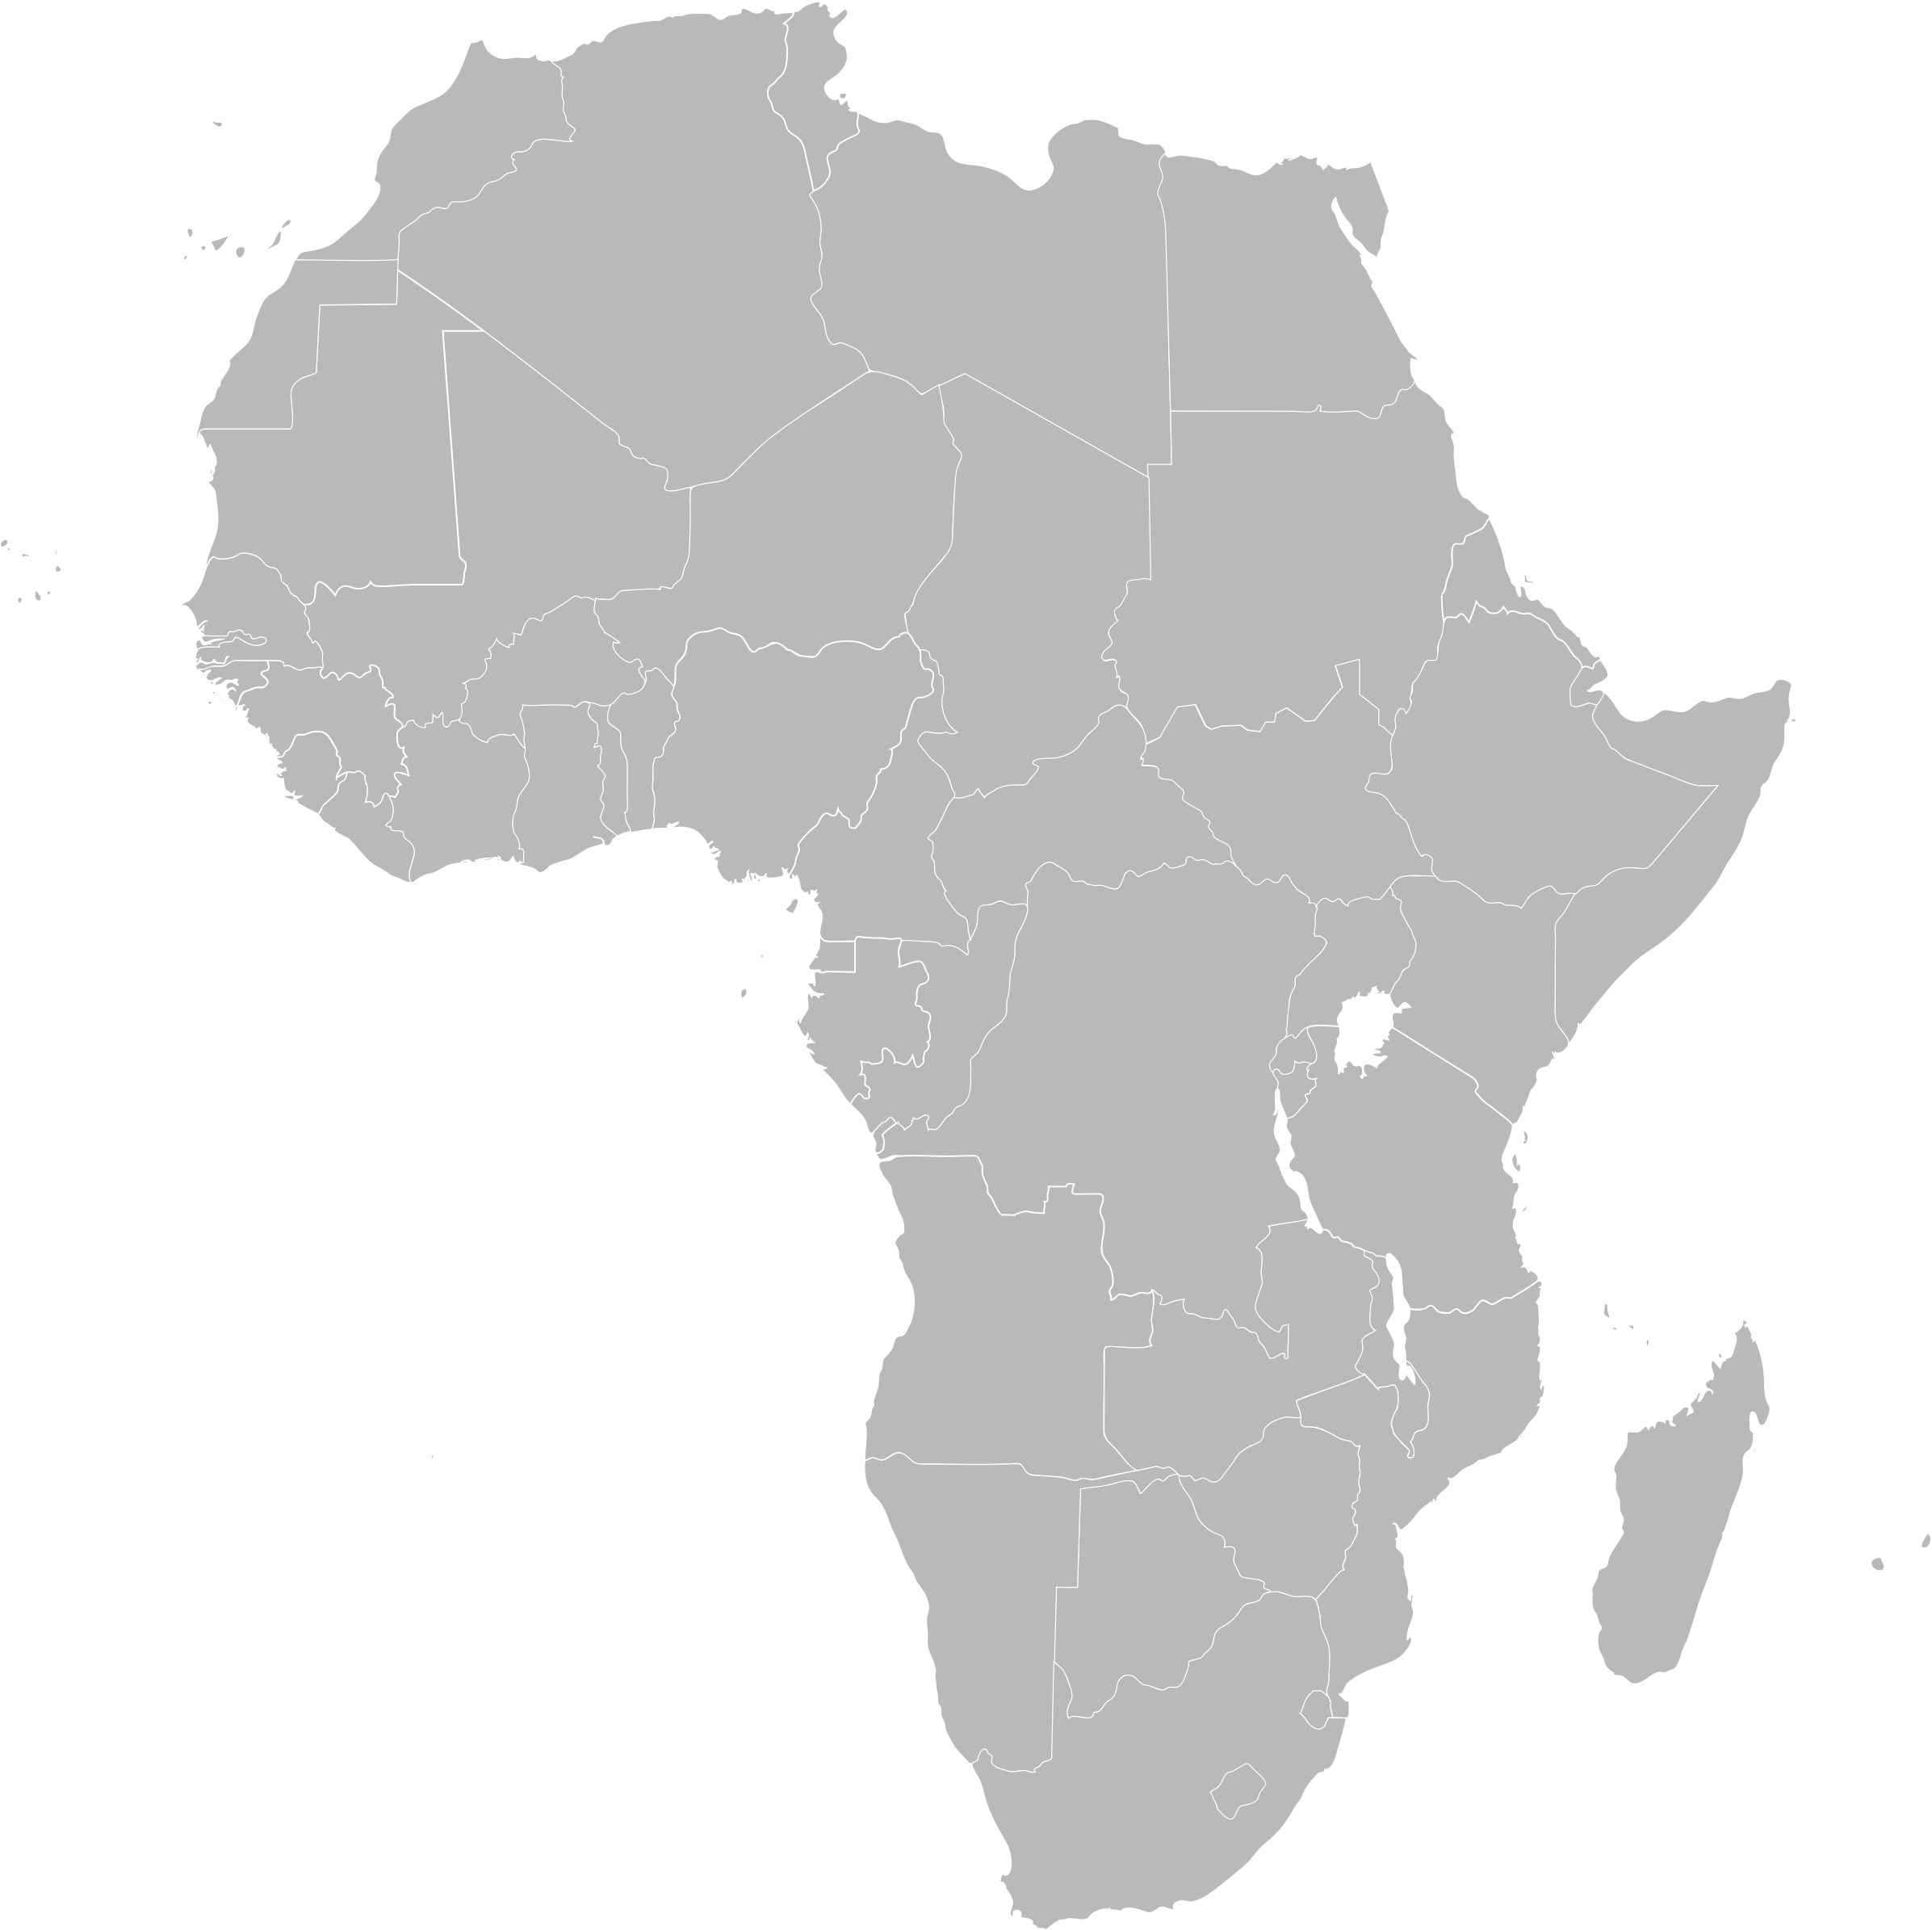 Outline map Africa by j_iglar